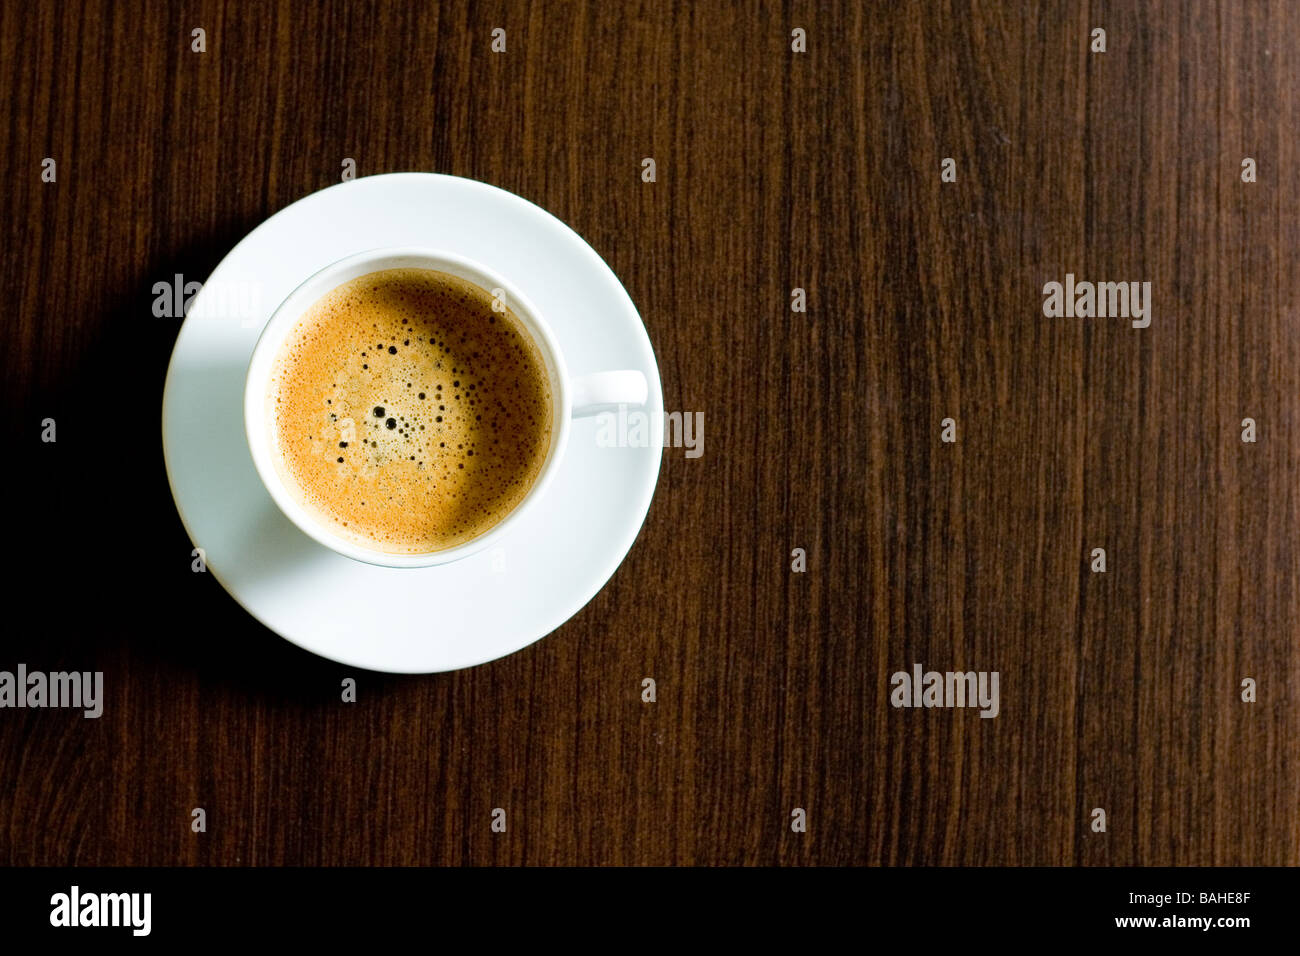 cup of coffe on table - Stock Image